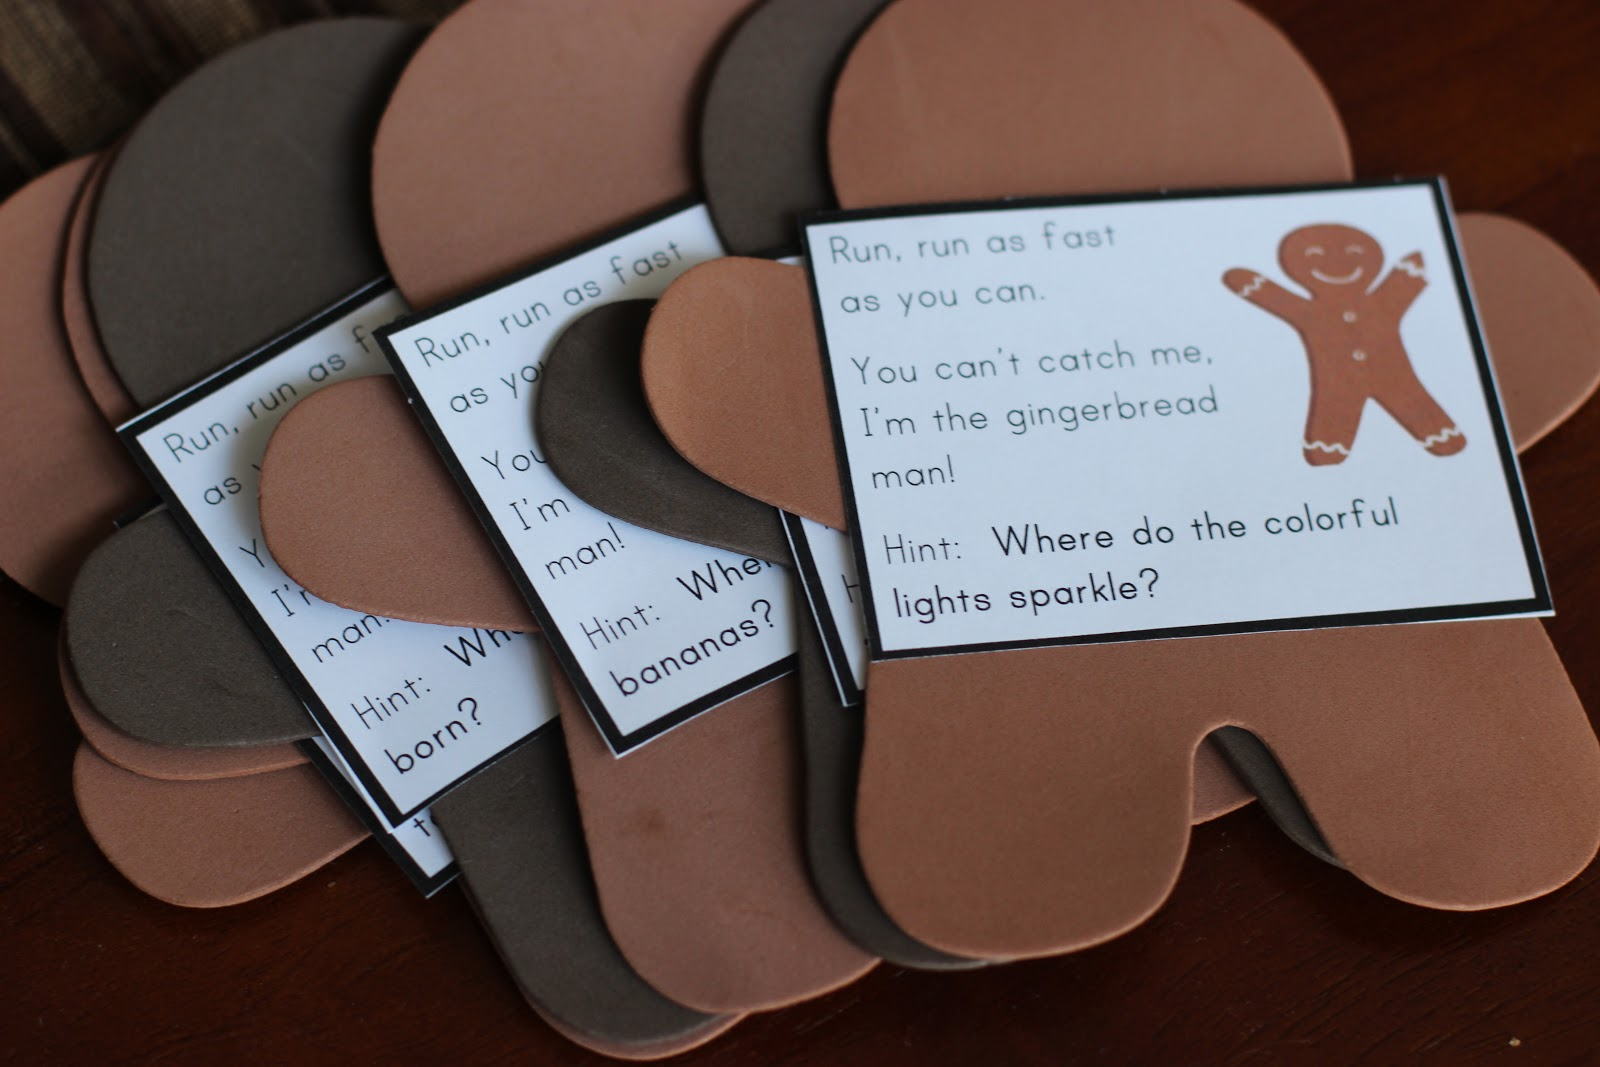 ... read the clues to figure out where to find the next gingerbread man